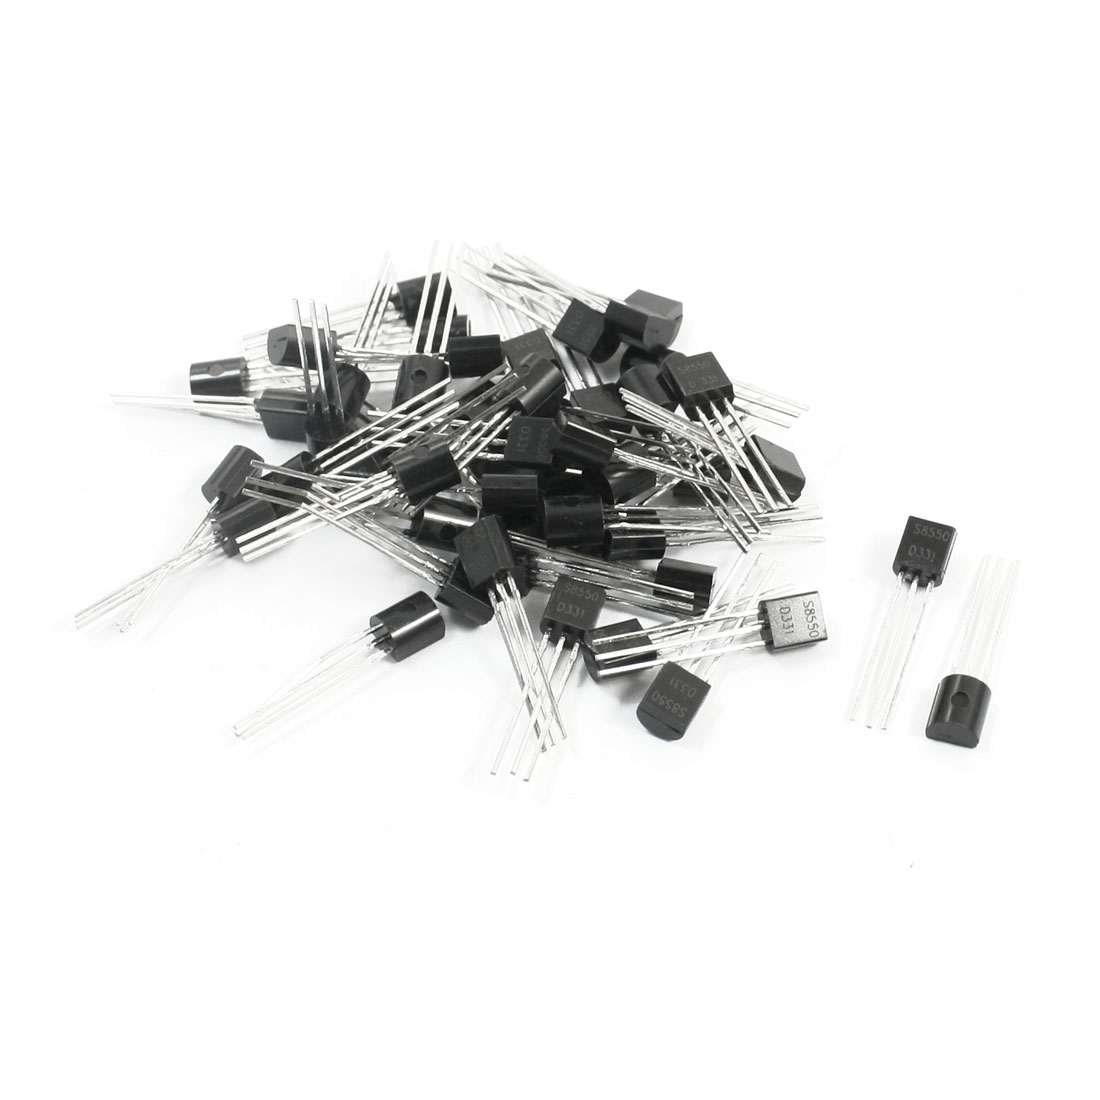 50Pcs S8550 TO-92 PNP Type 3 Pins PCB Through Hole General Purpose Power Silicon Triode Transistor 30V 30mA